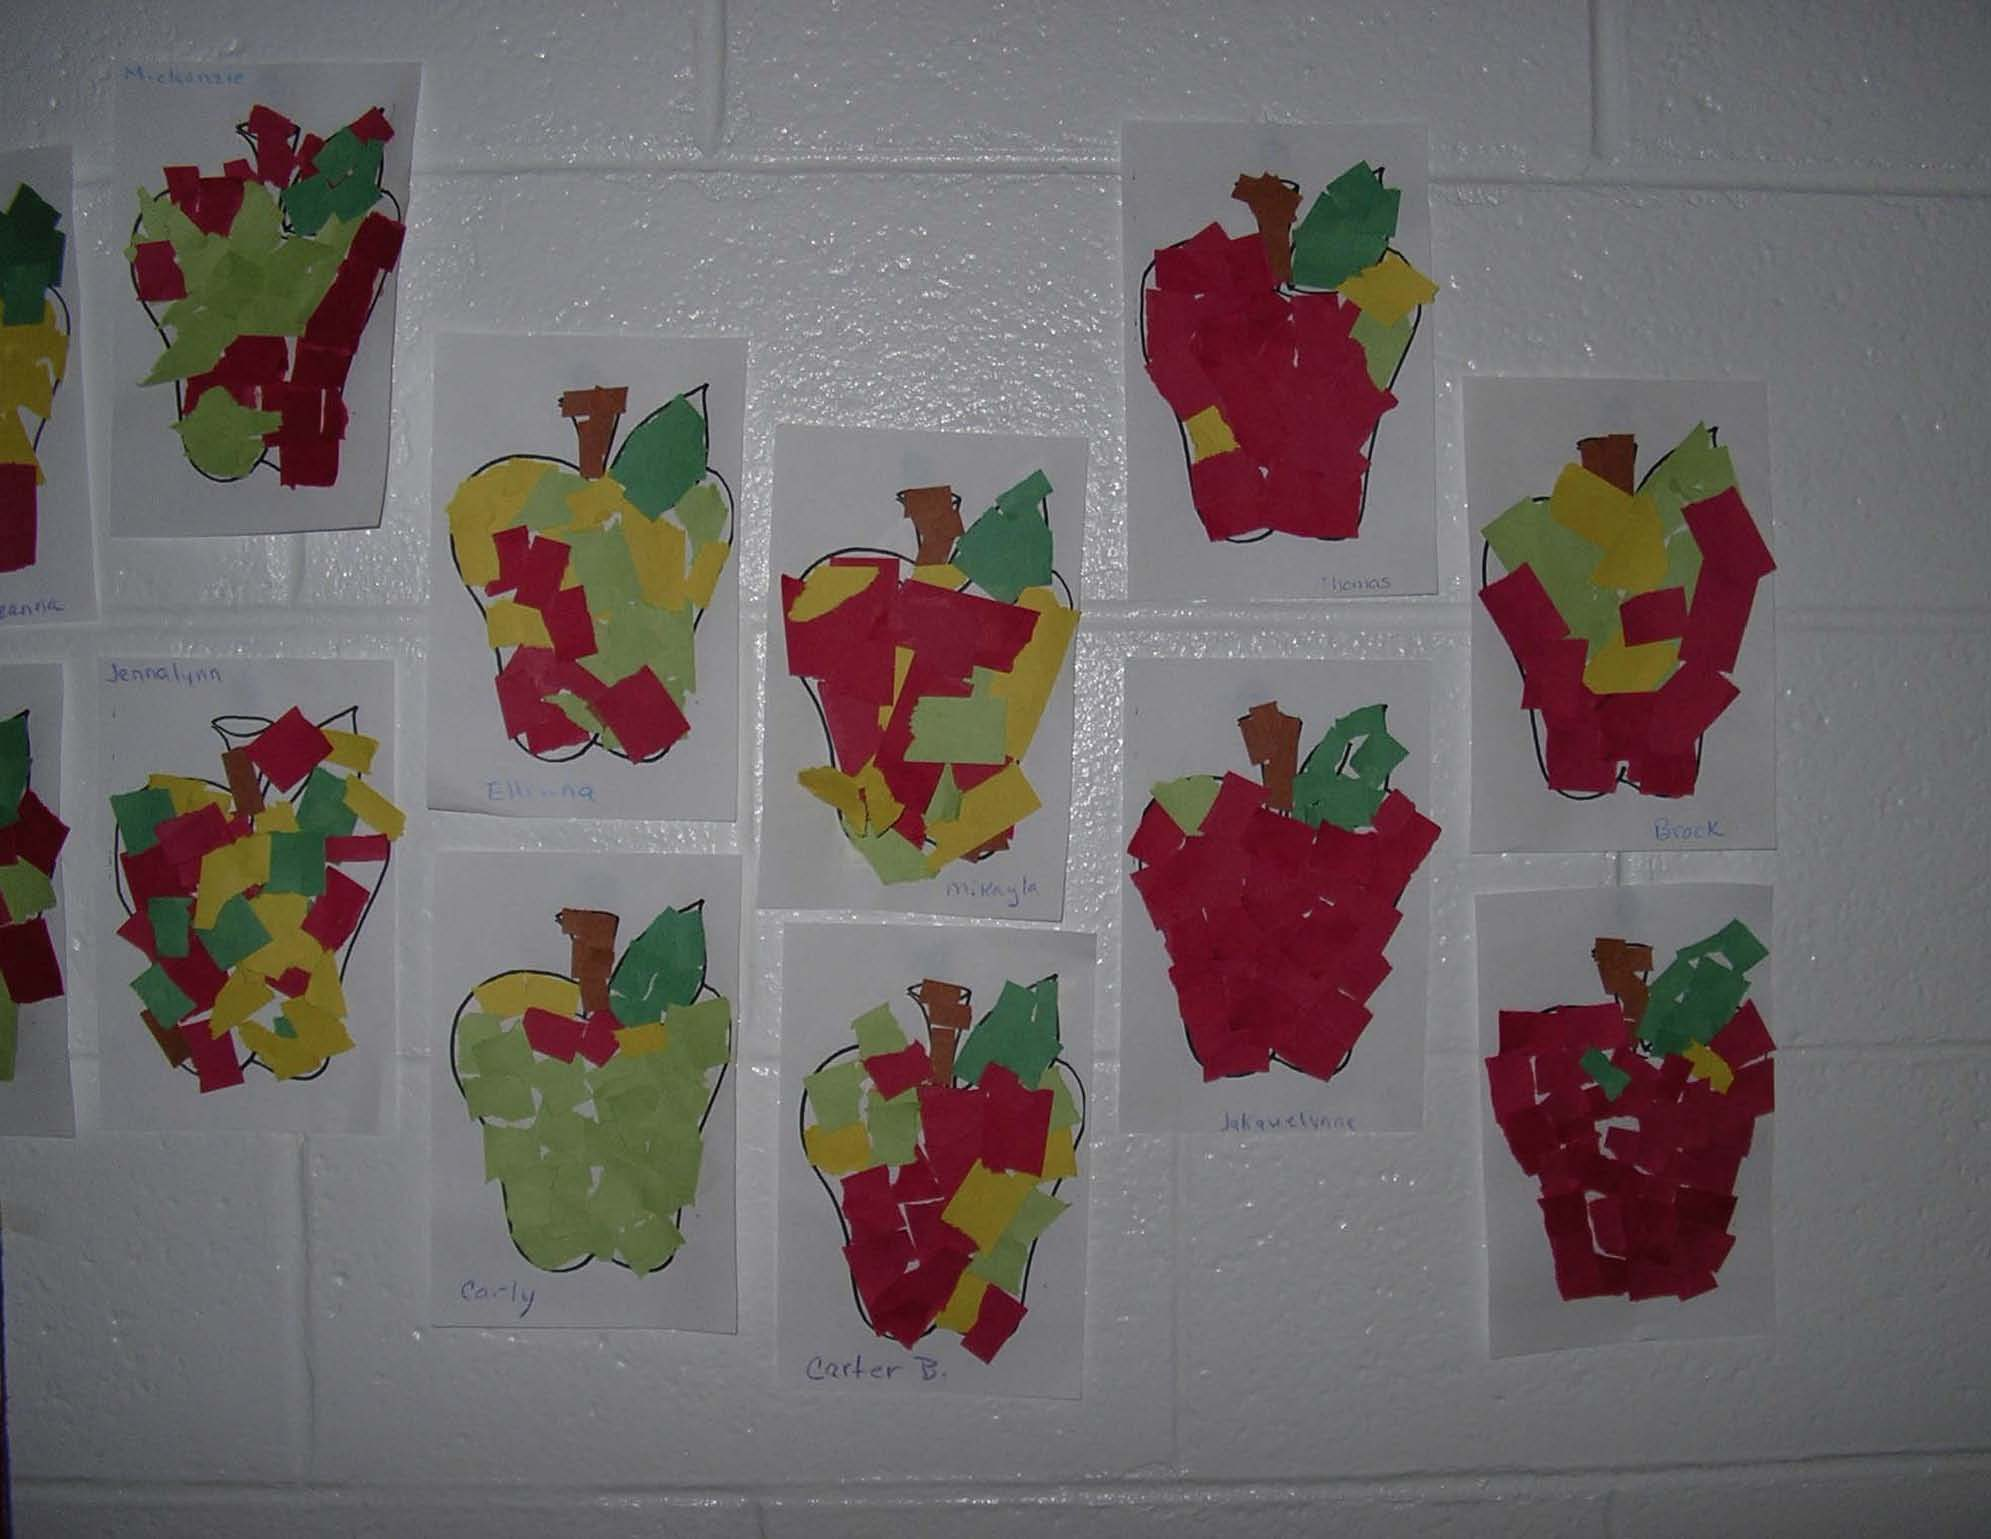 apple activities, apple centers, apple art, apple arts and crafts, quick and easy art projects, quick and easy apple activities, quik and easy apple crafts, apple poems, apple bulletin boards, ideas for september bulletin boards, rip and tear apples, melted crayon apples, apple fingerprint trees, apple tree with a child's hand, finger print apples, keepsake crafts for kids,